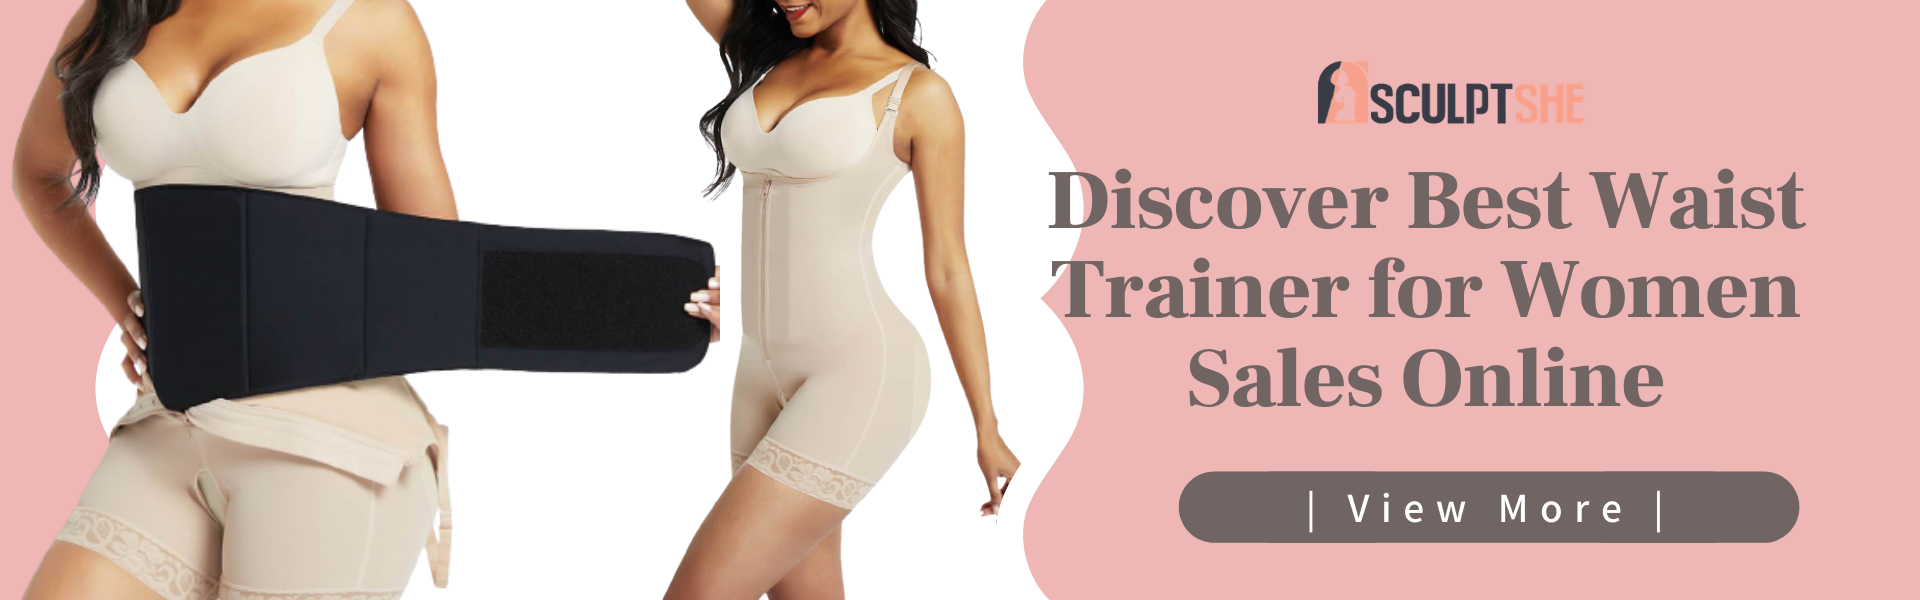 Discover Best Waist Trainer for Women Sales Online